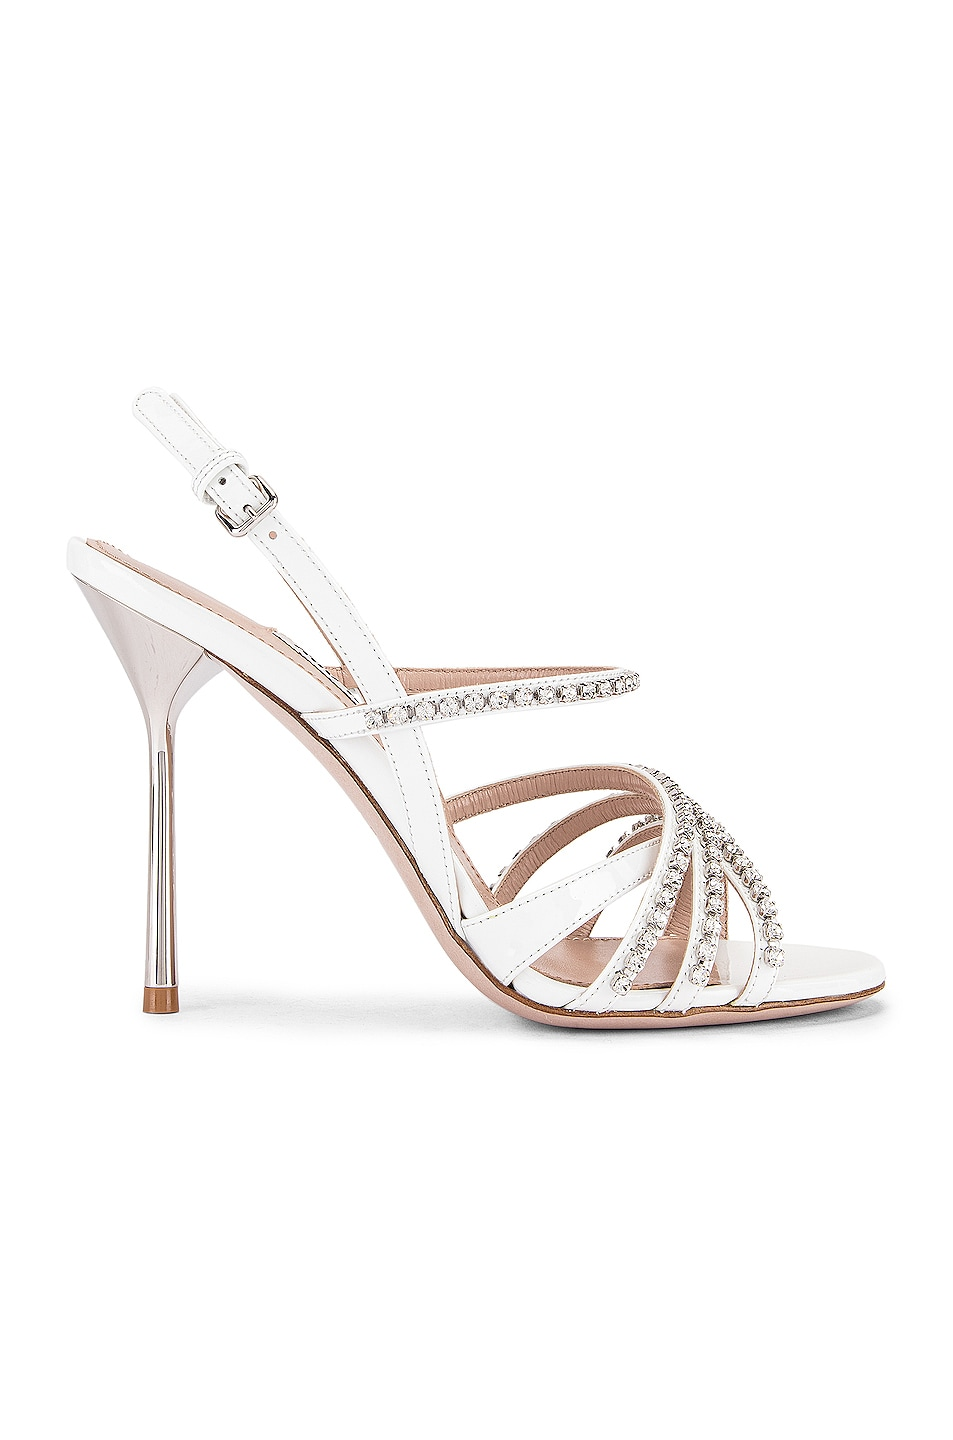 Image 1 of Miu Miu Jewel Slingback Heels in White